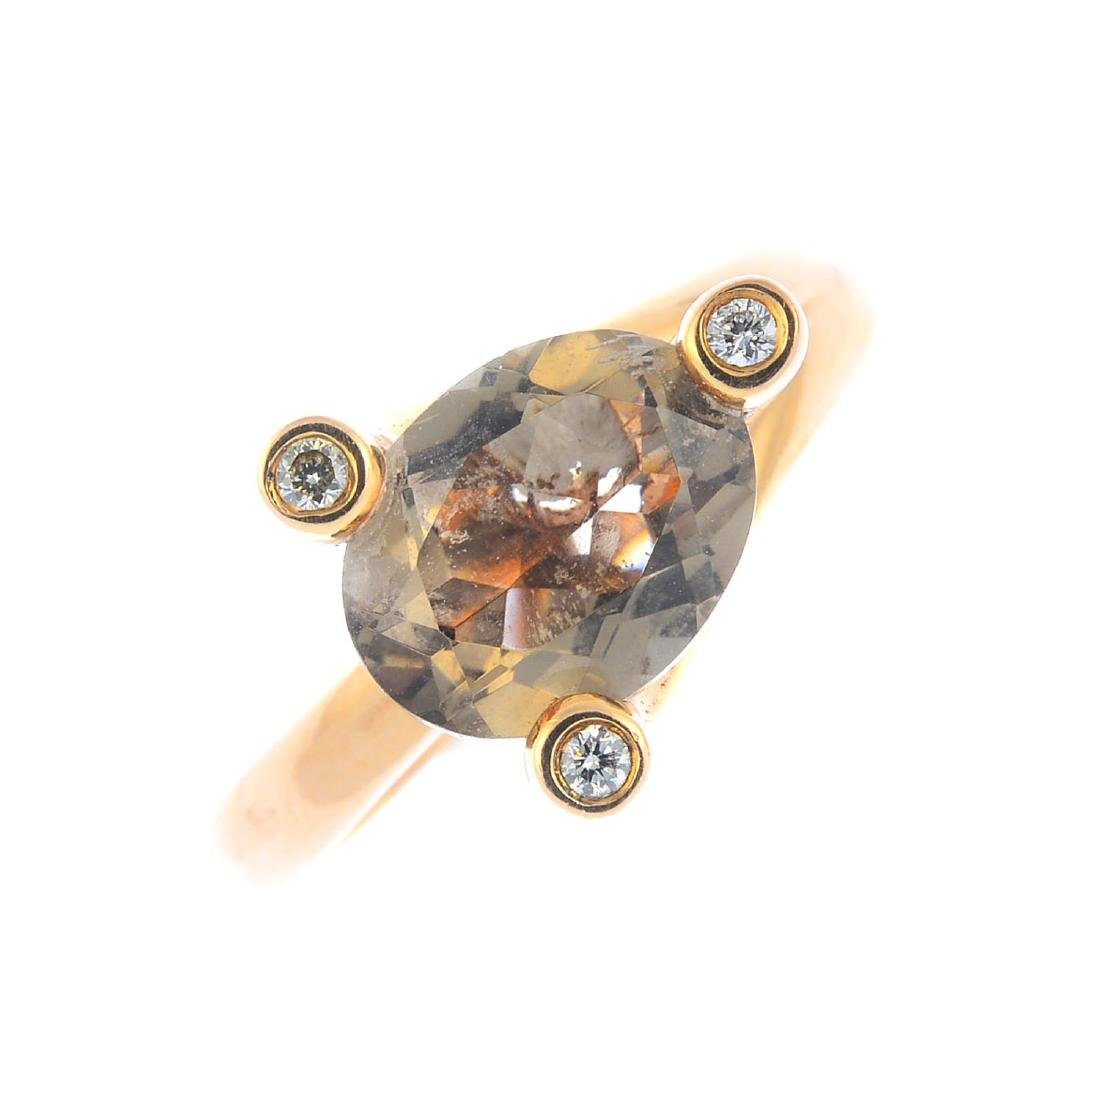 An 18ct gold andalusite and diamond ring. The